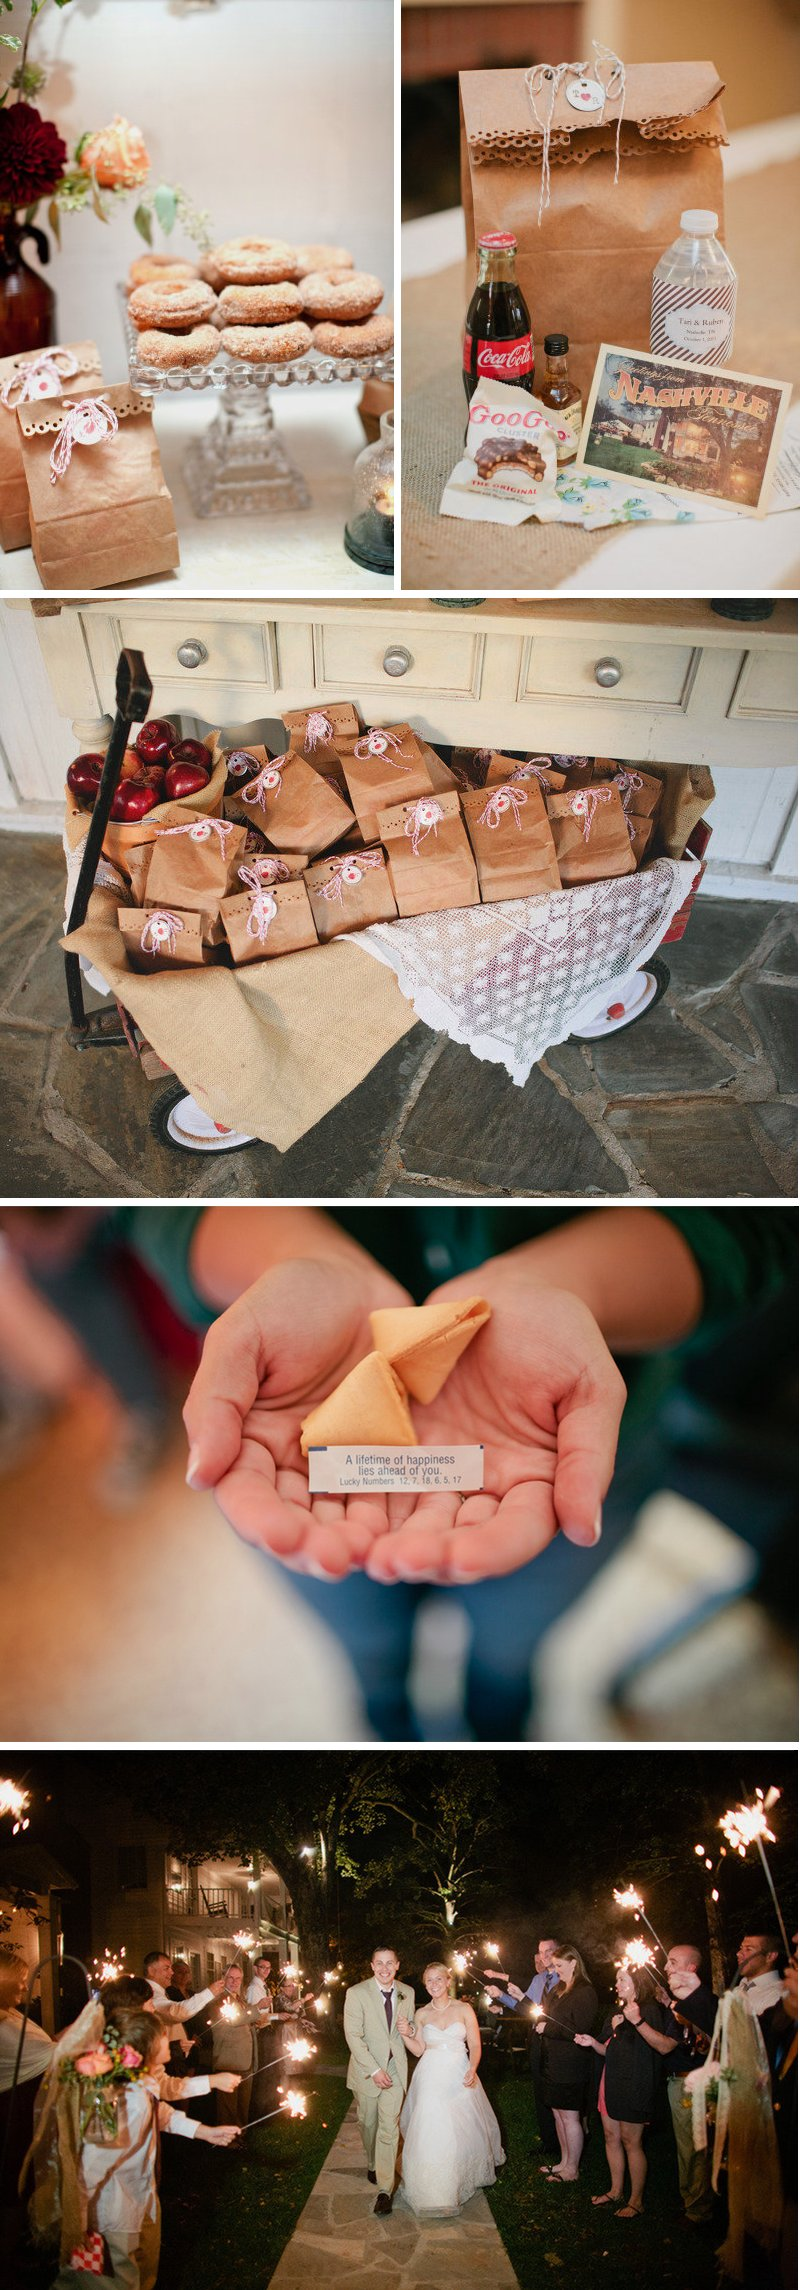 Sweet-southern-wedding-donuts-as-wedding-cake-alternative-guest-welcome-bags.full